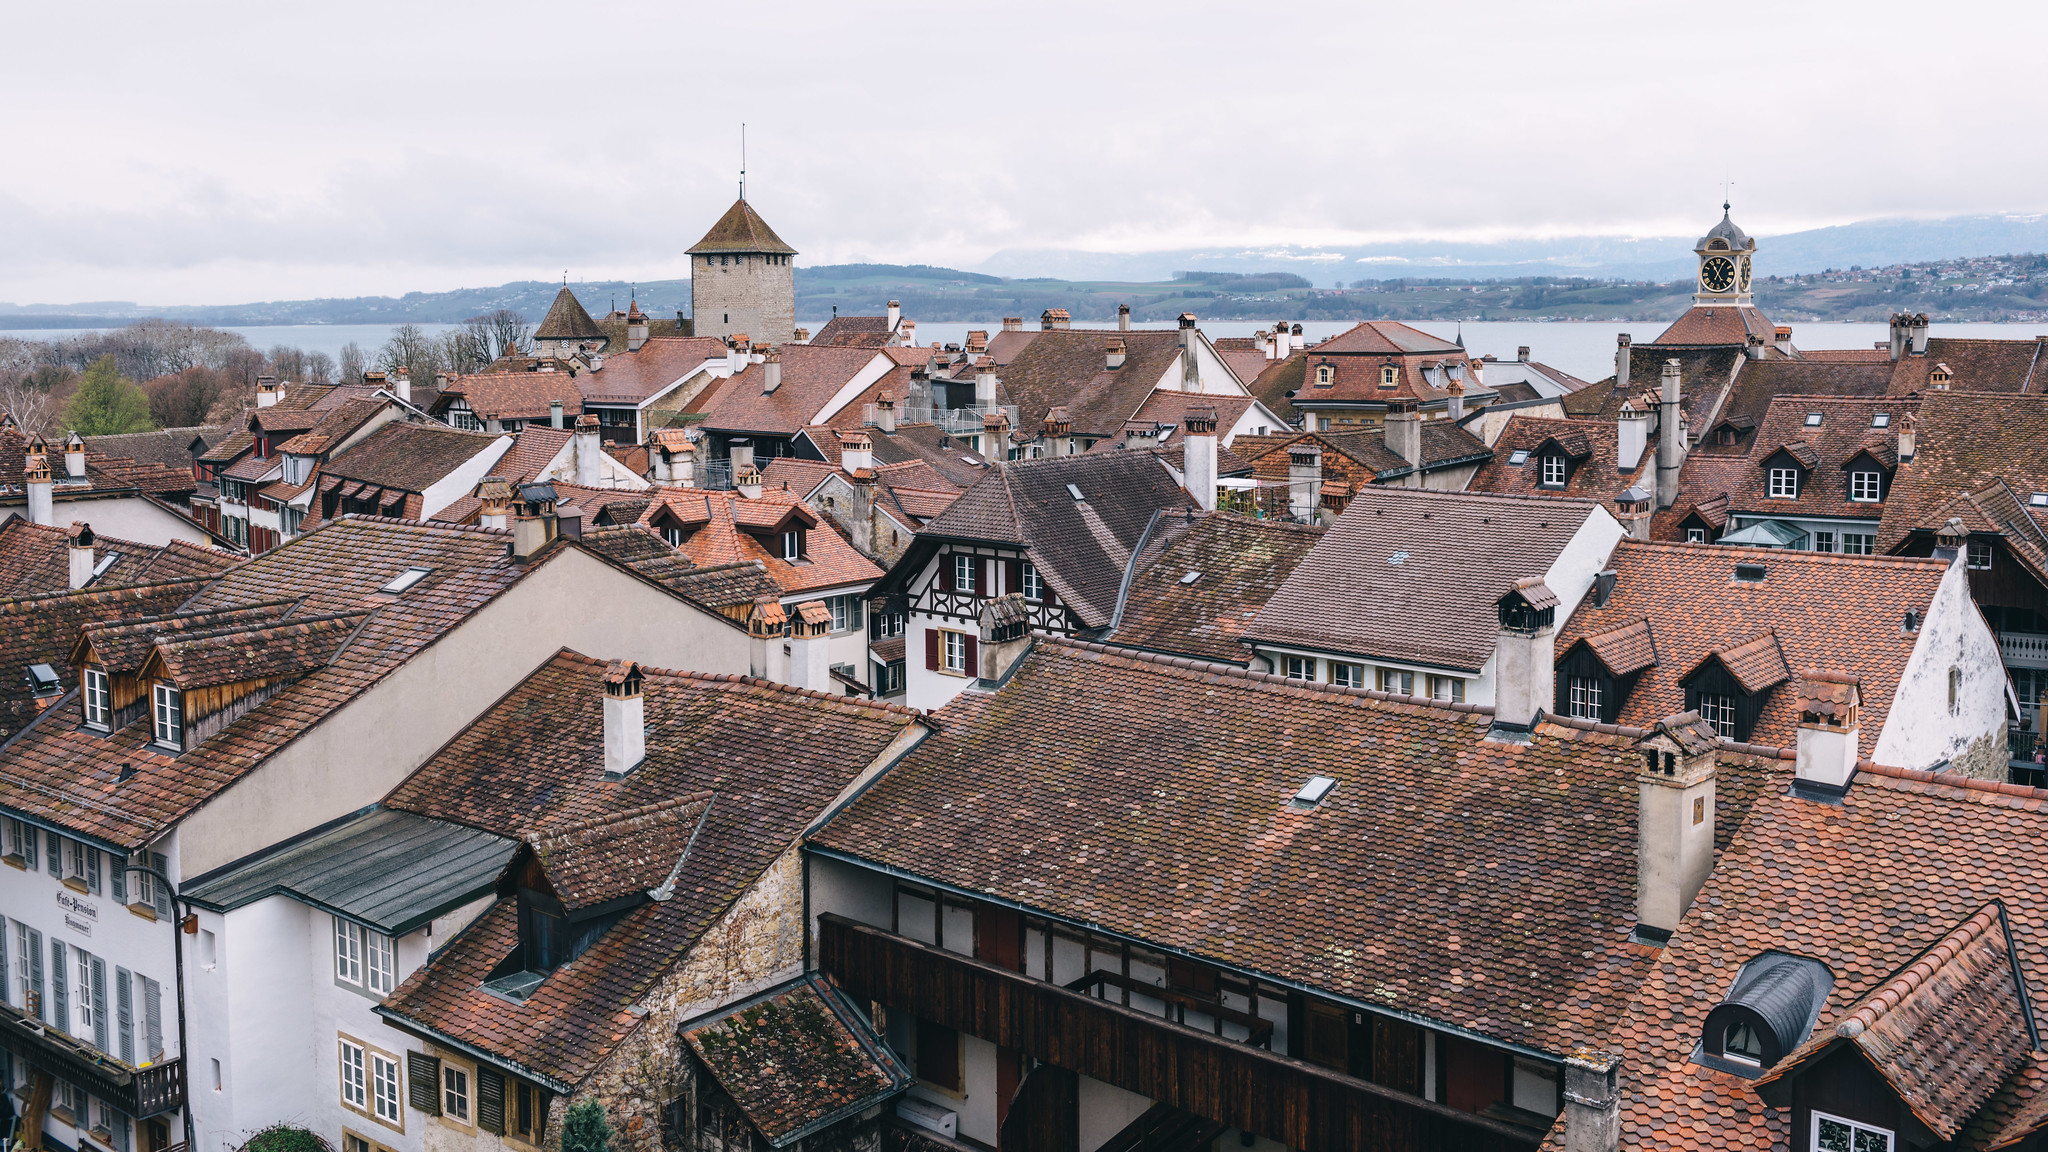 View from the wall over Murten